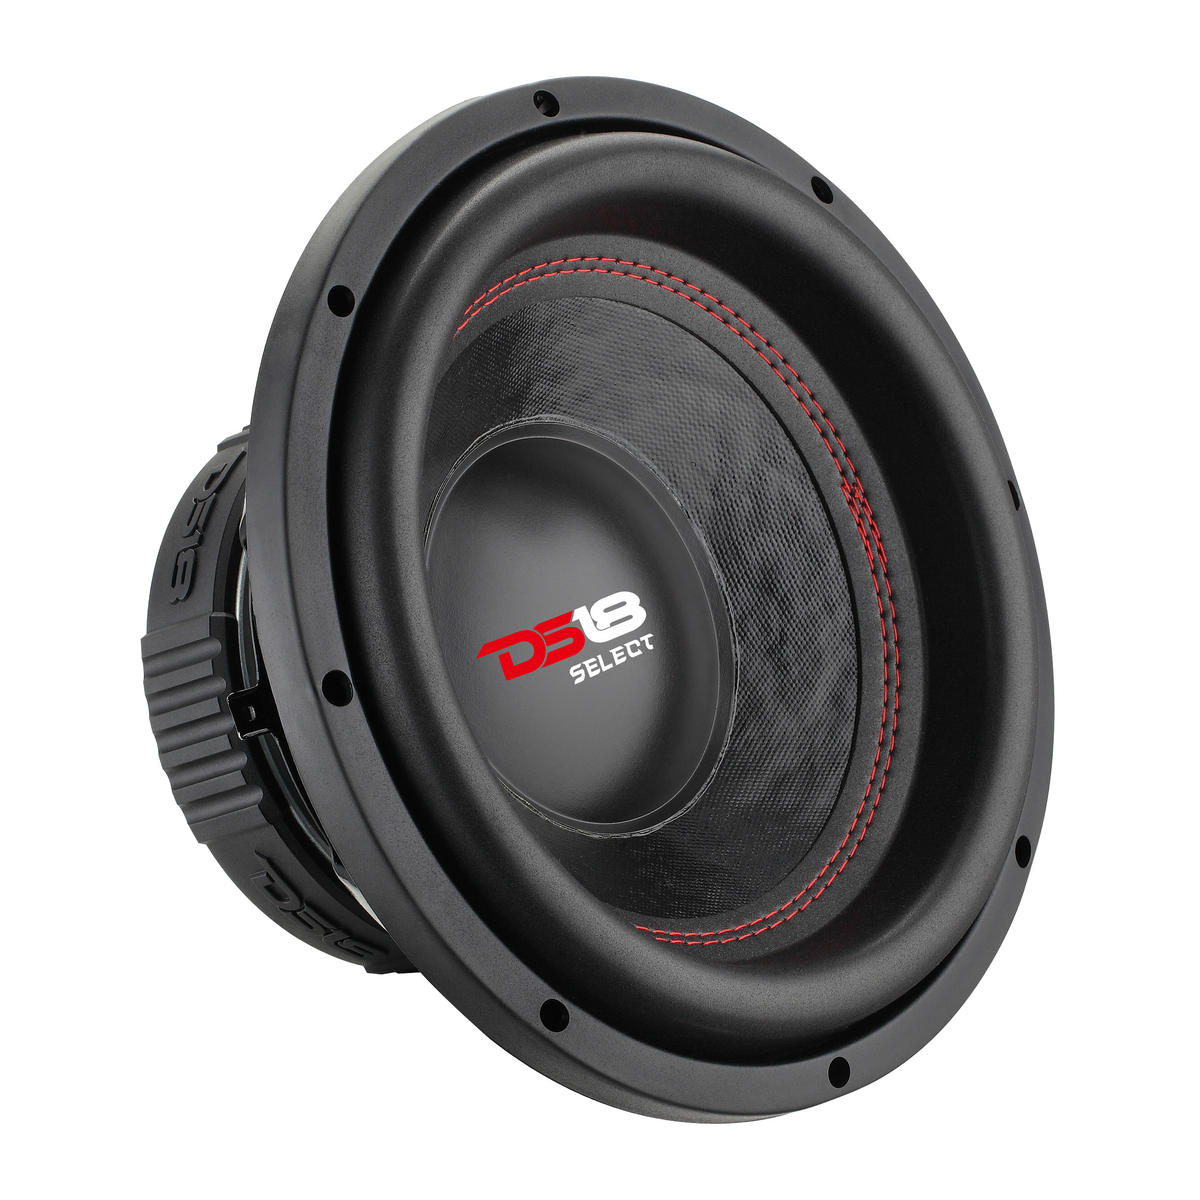 """DS18 SLC10S Select 440 Watts 10"""" Inch Subwoofer"""